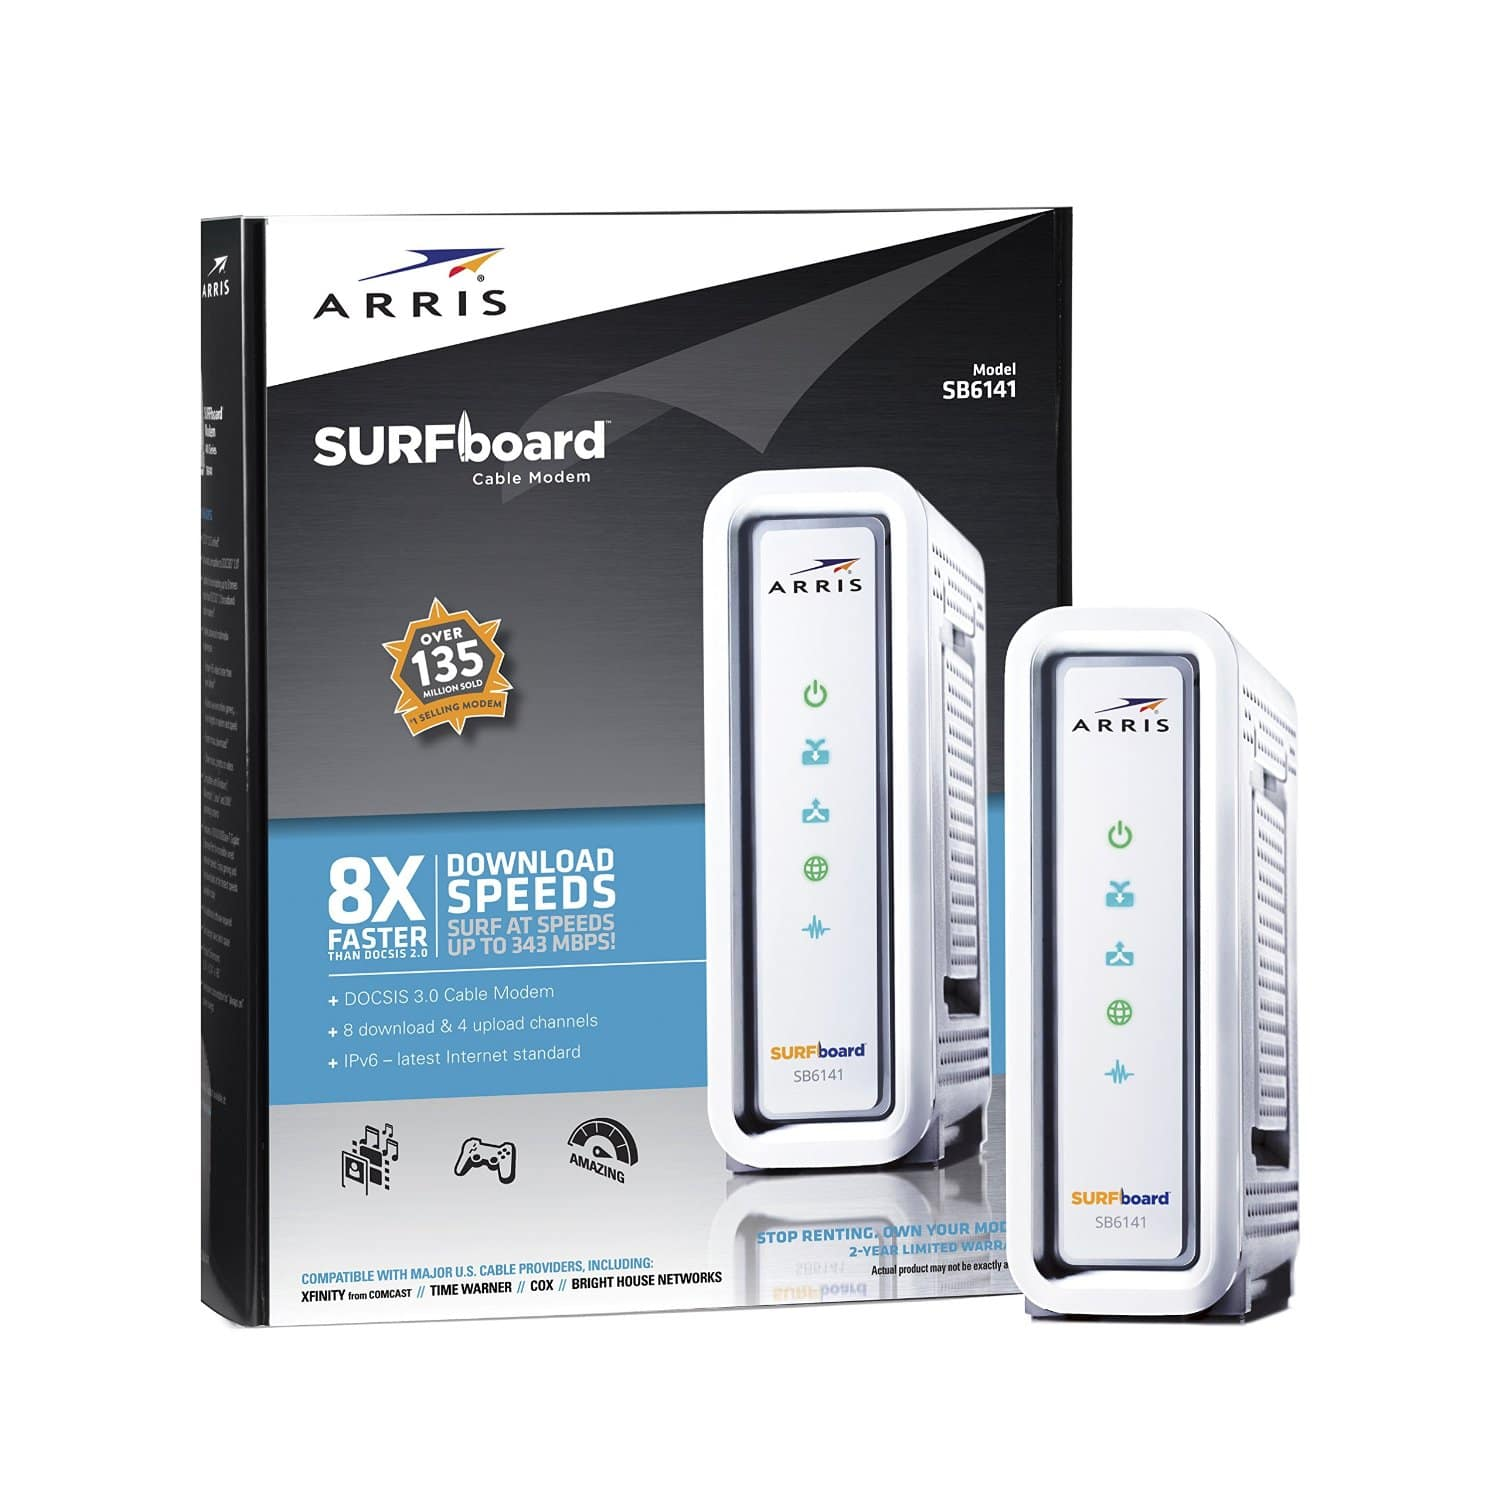 how to change password on arris modem